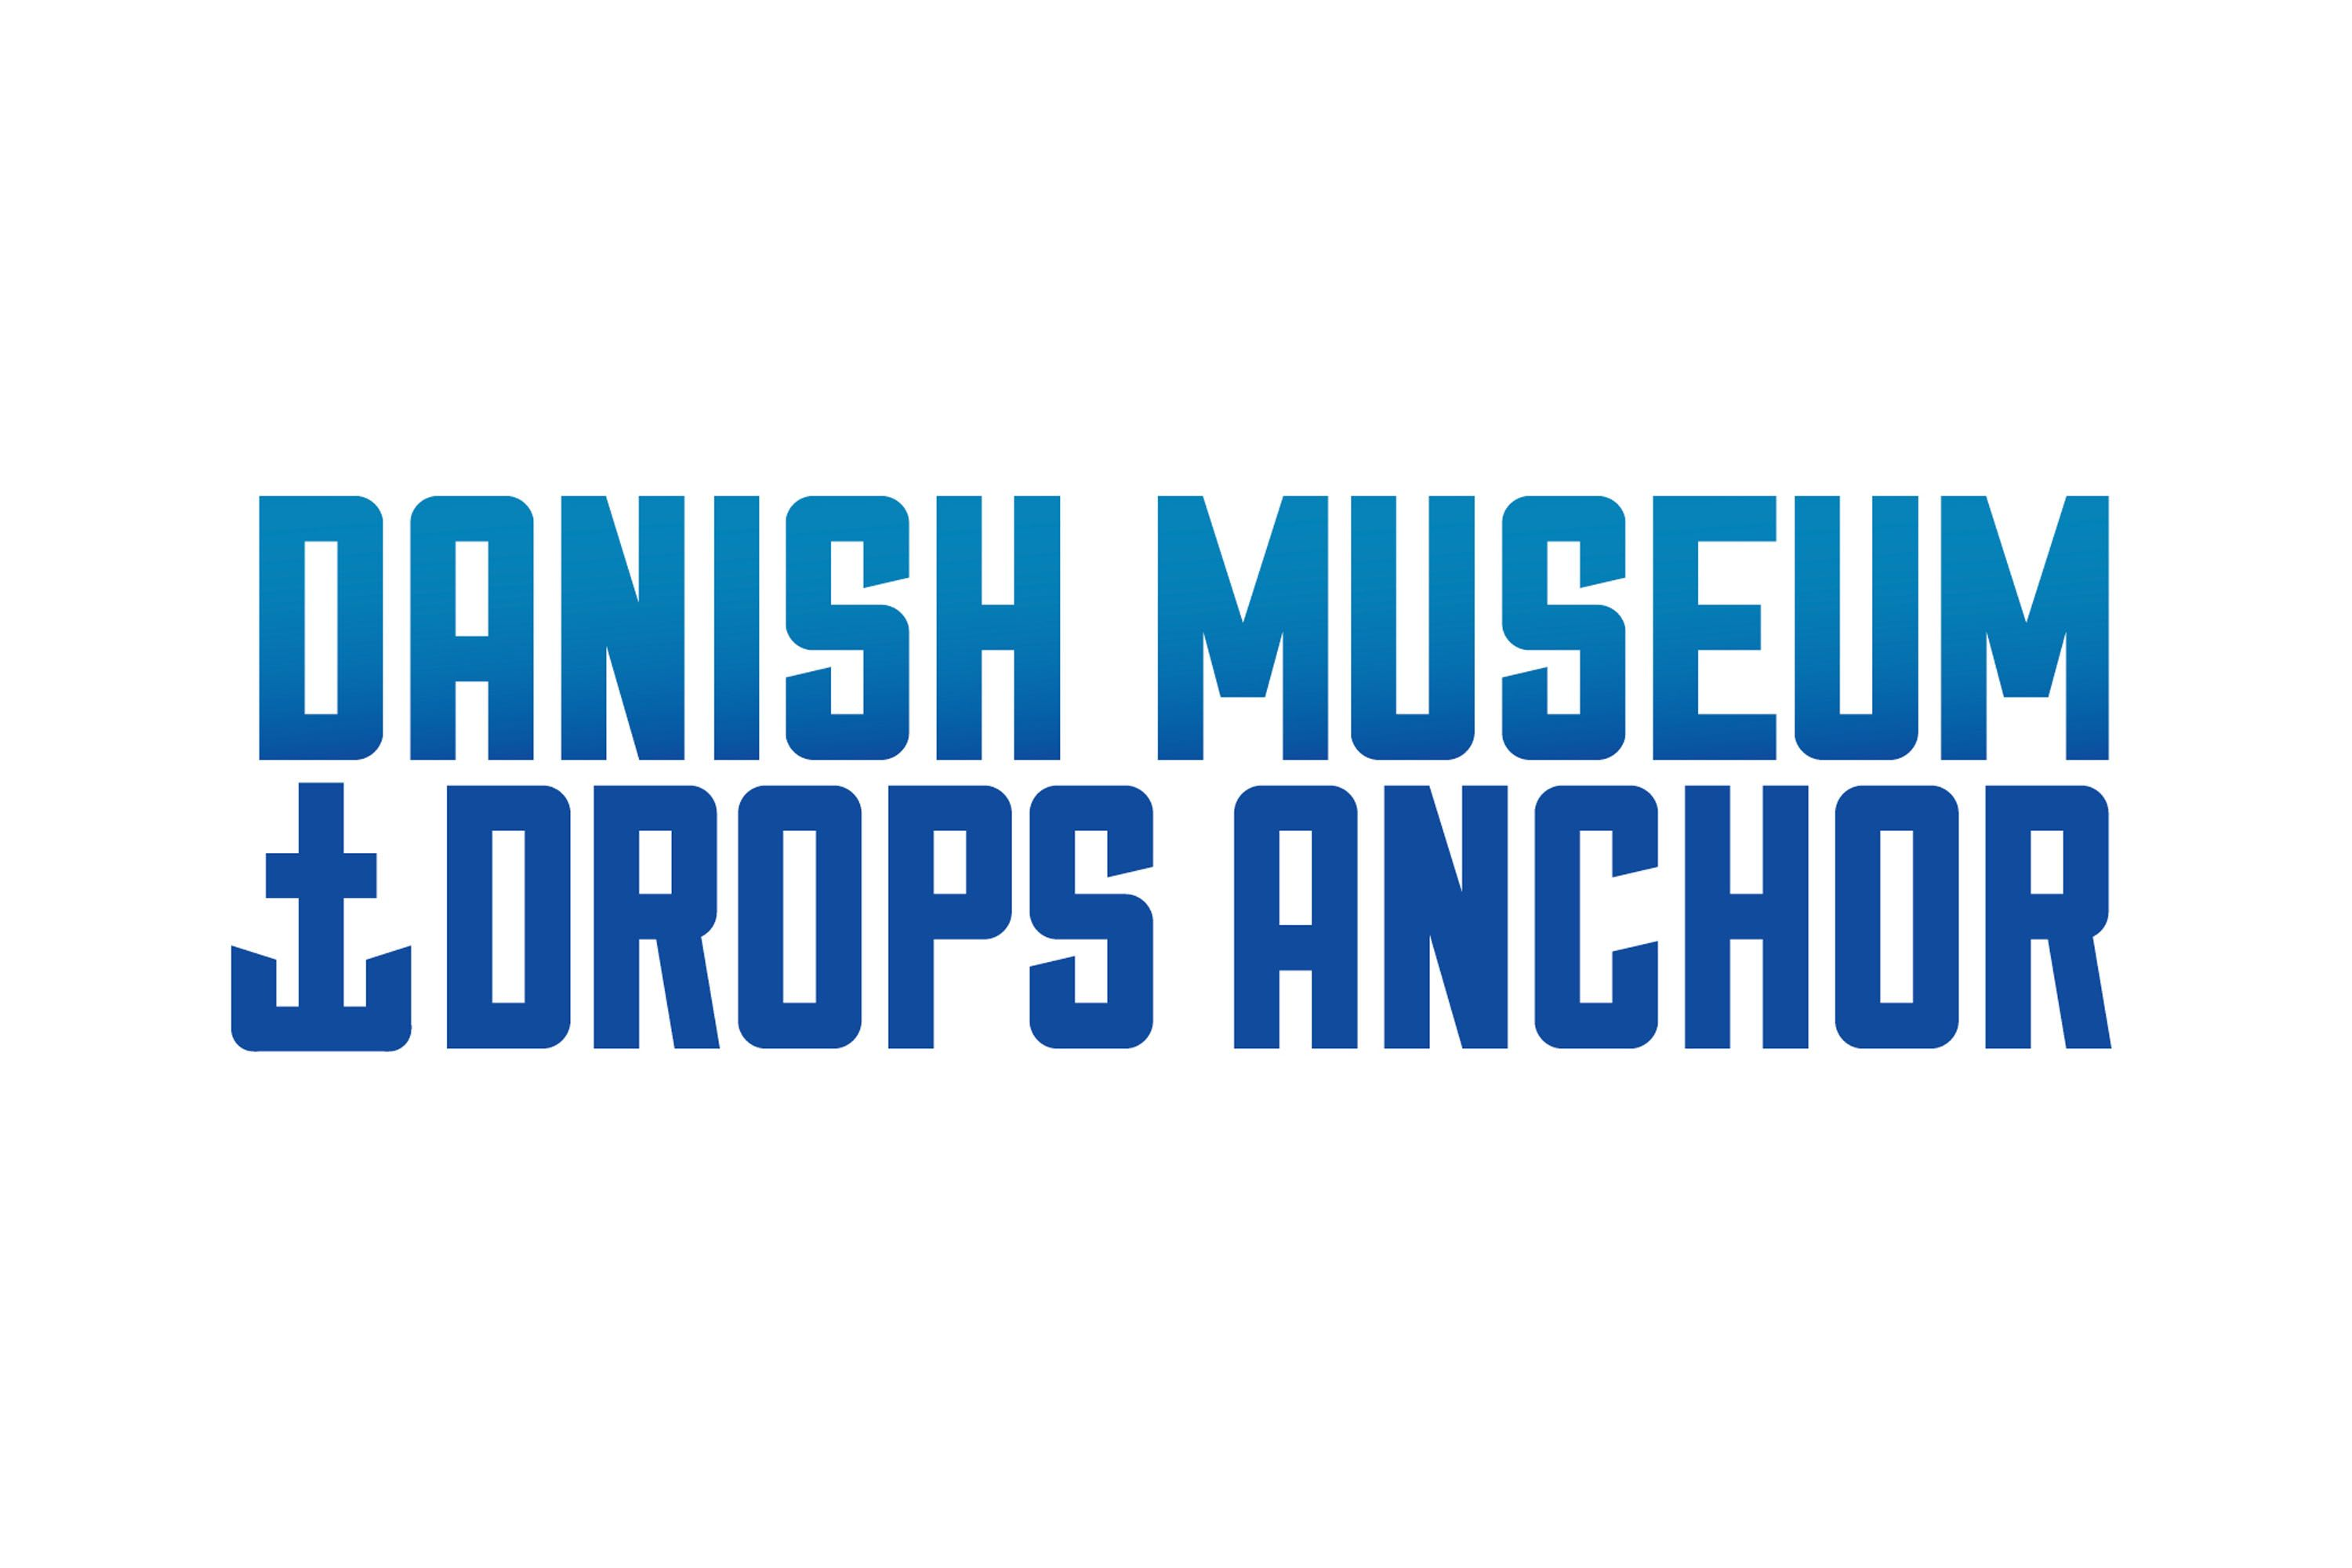 Danish National Maritime Museum | Logos / Badges | Pinterest